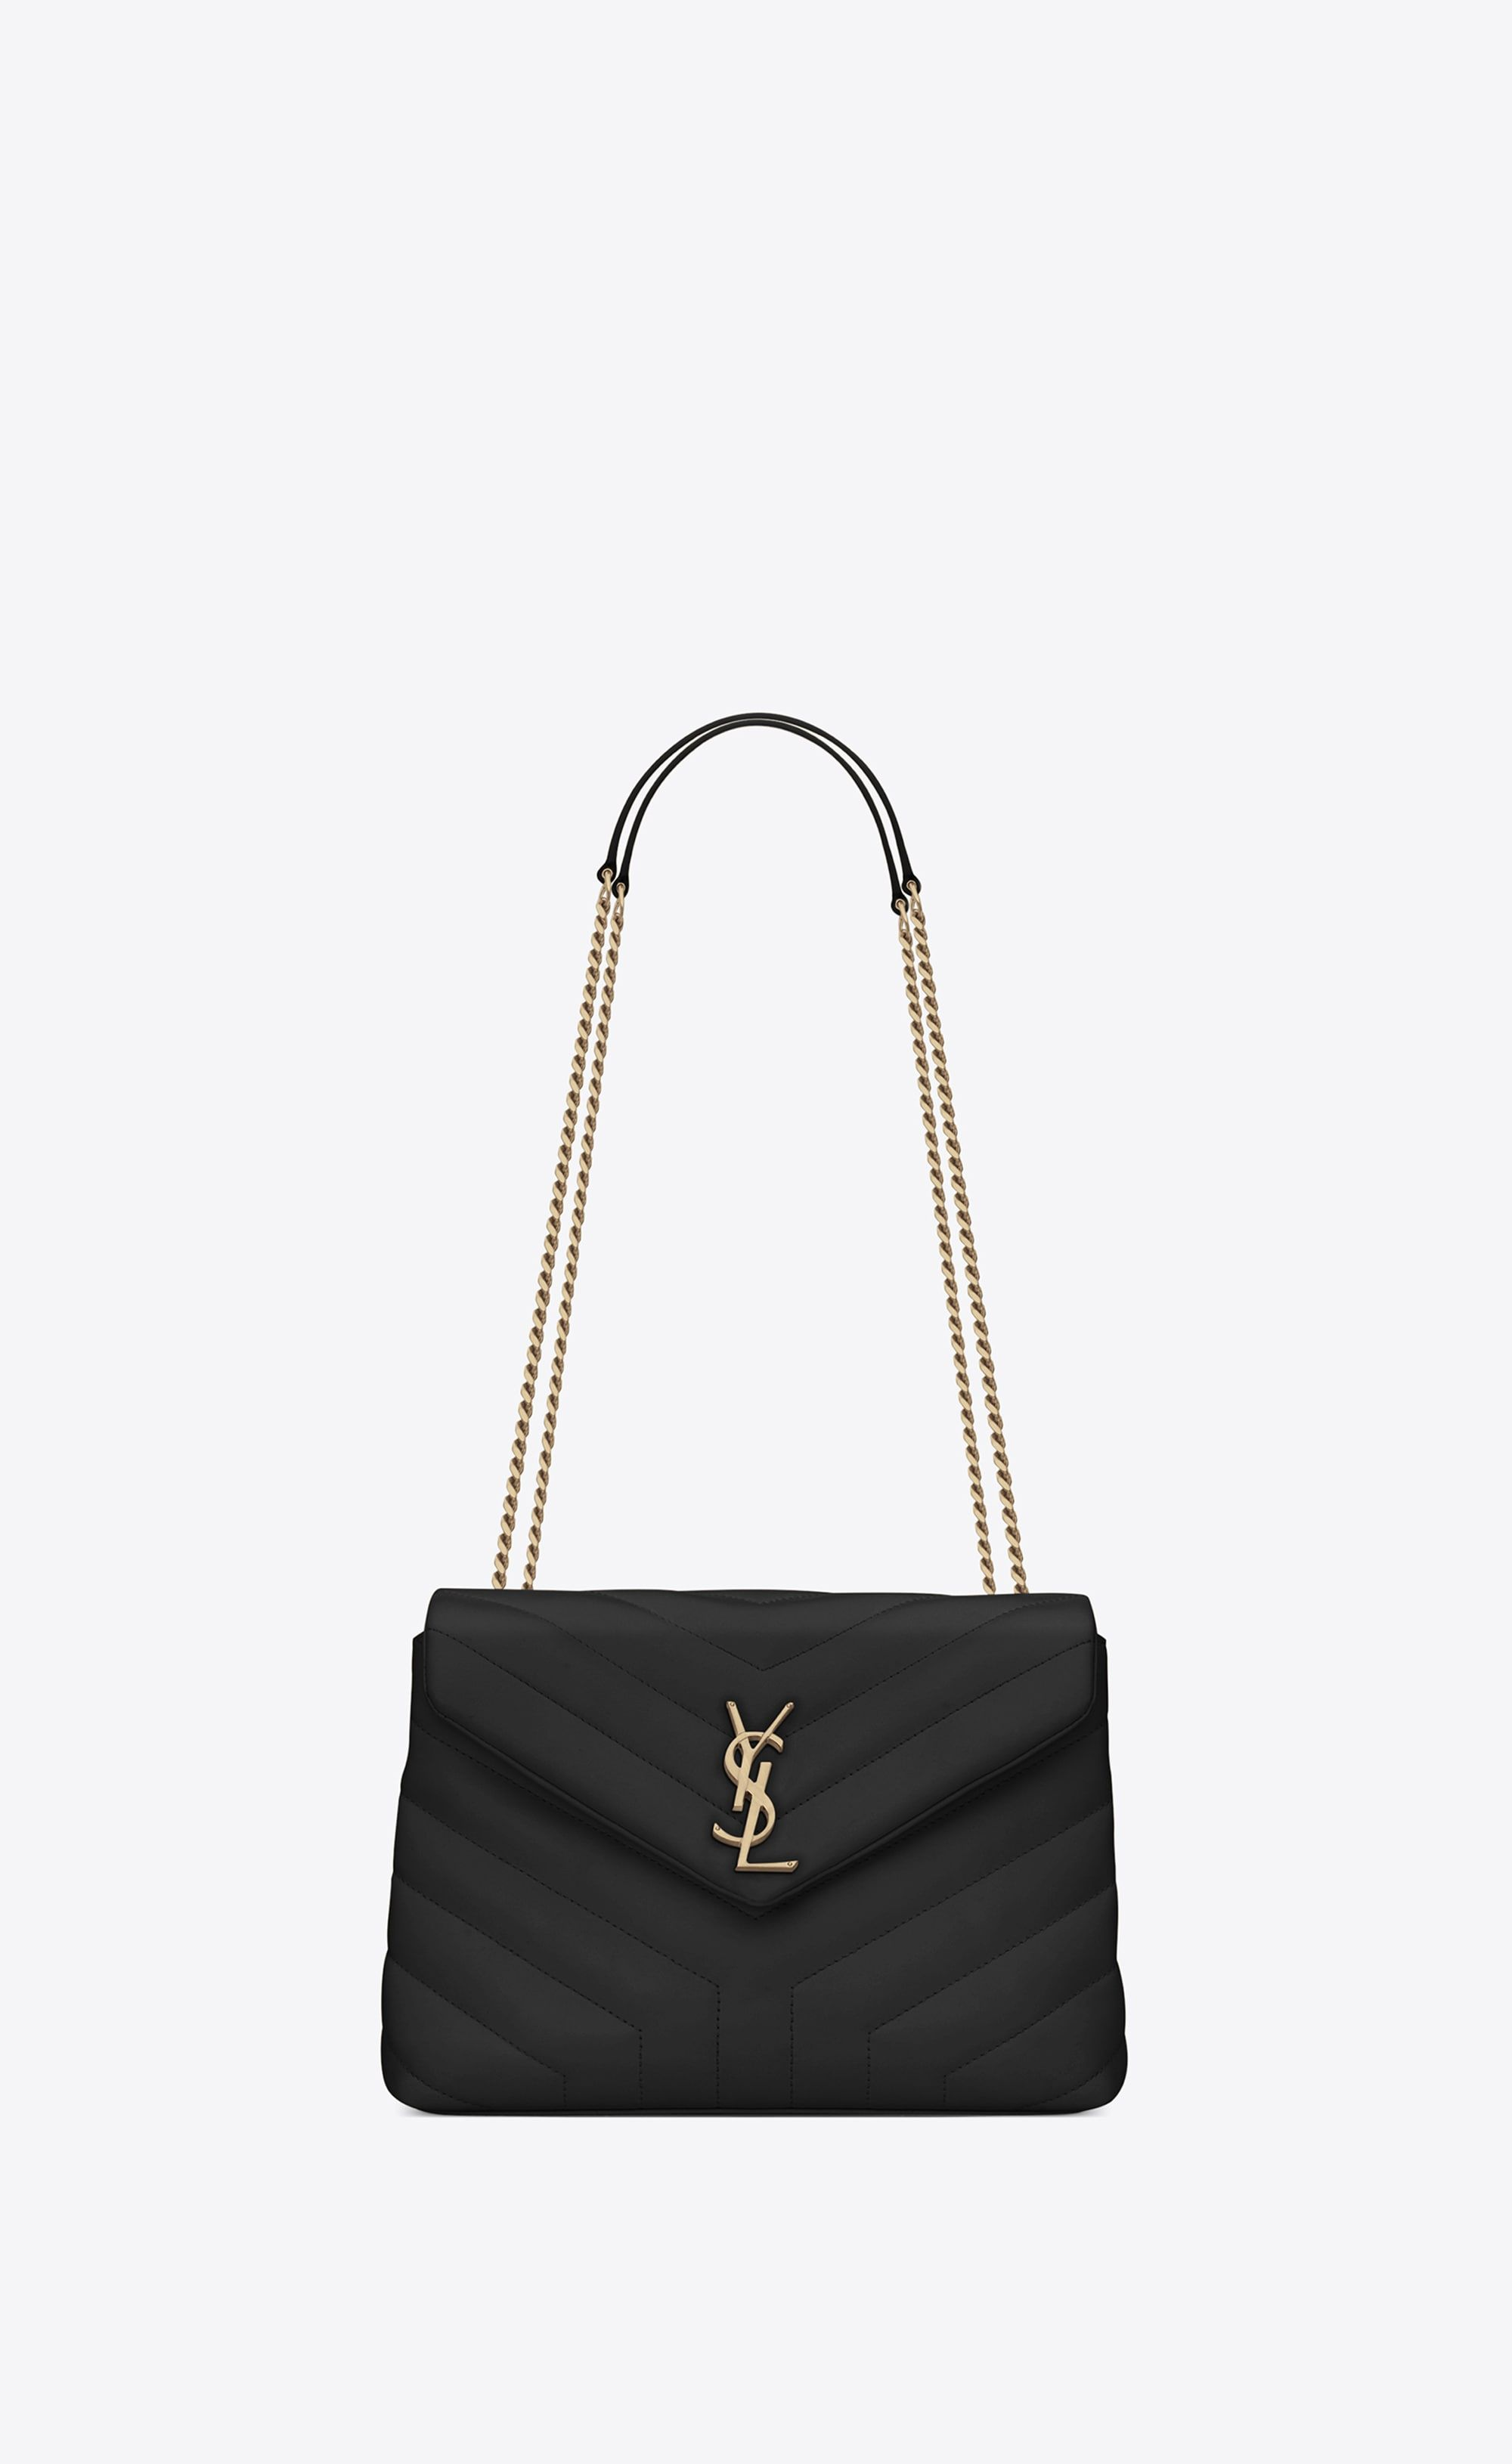 """Saint Laurent Loulou Small In Matelassé """"Y"""" Leather  19bf5abbc05ad"""